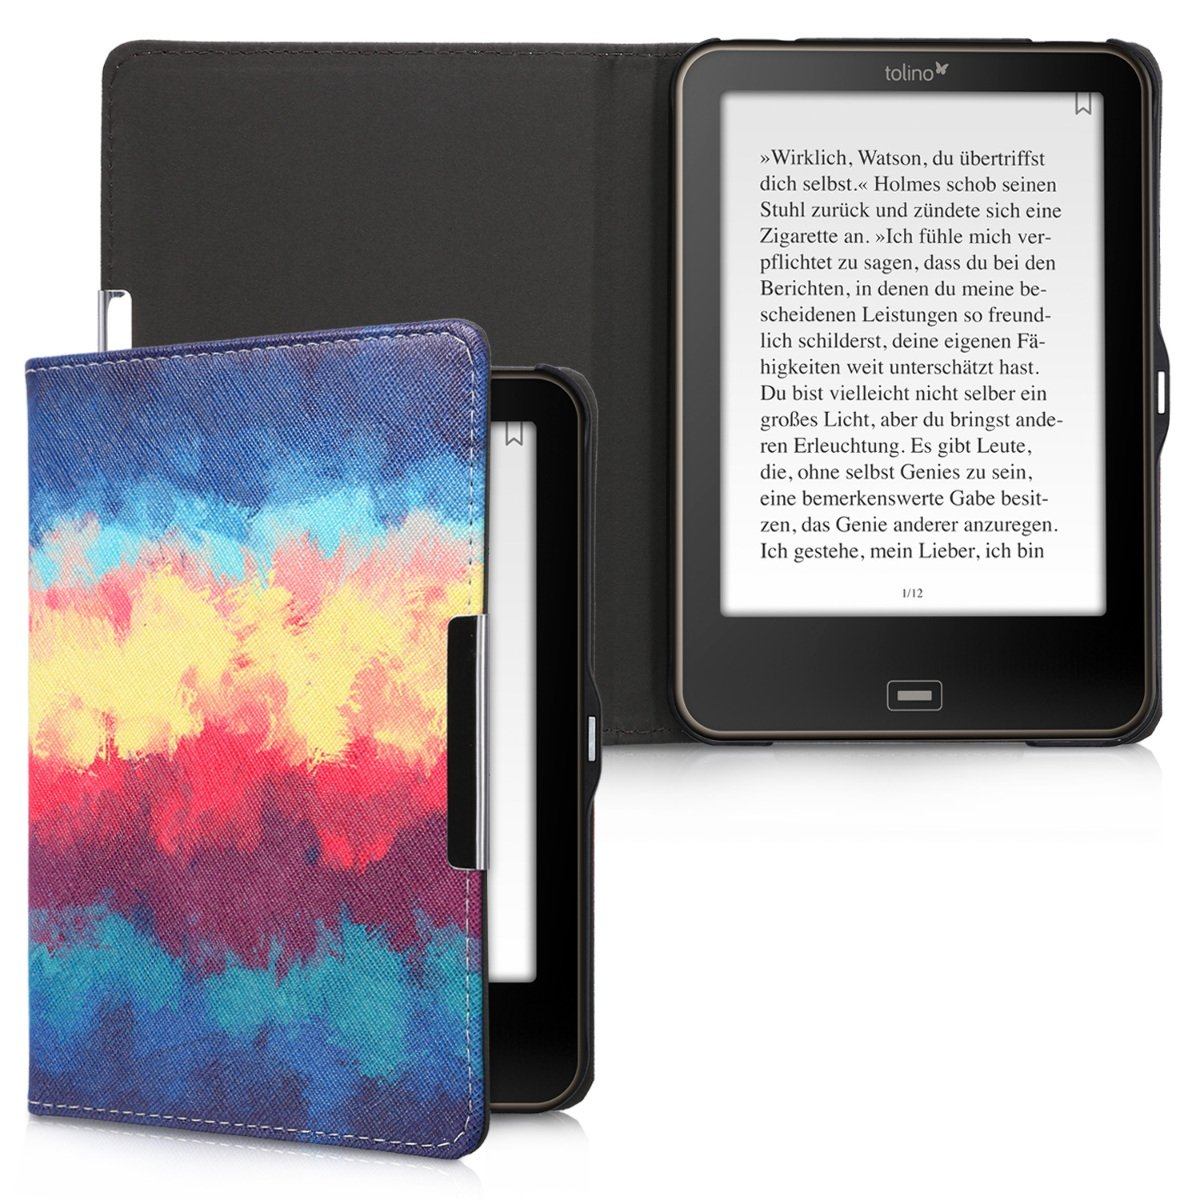 kwmobile Case for Tolino Vision 1/2 / 3/4 HD - Book Style PU Leather Protective e-Reader Cover Folio Case - dark blue yellow red by kwmobile (Image #6)